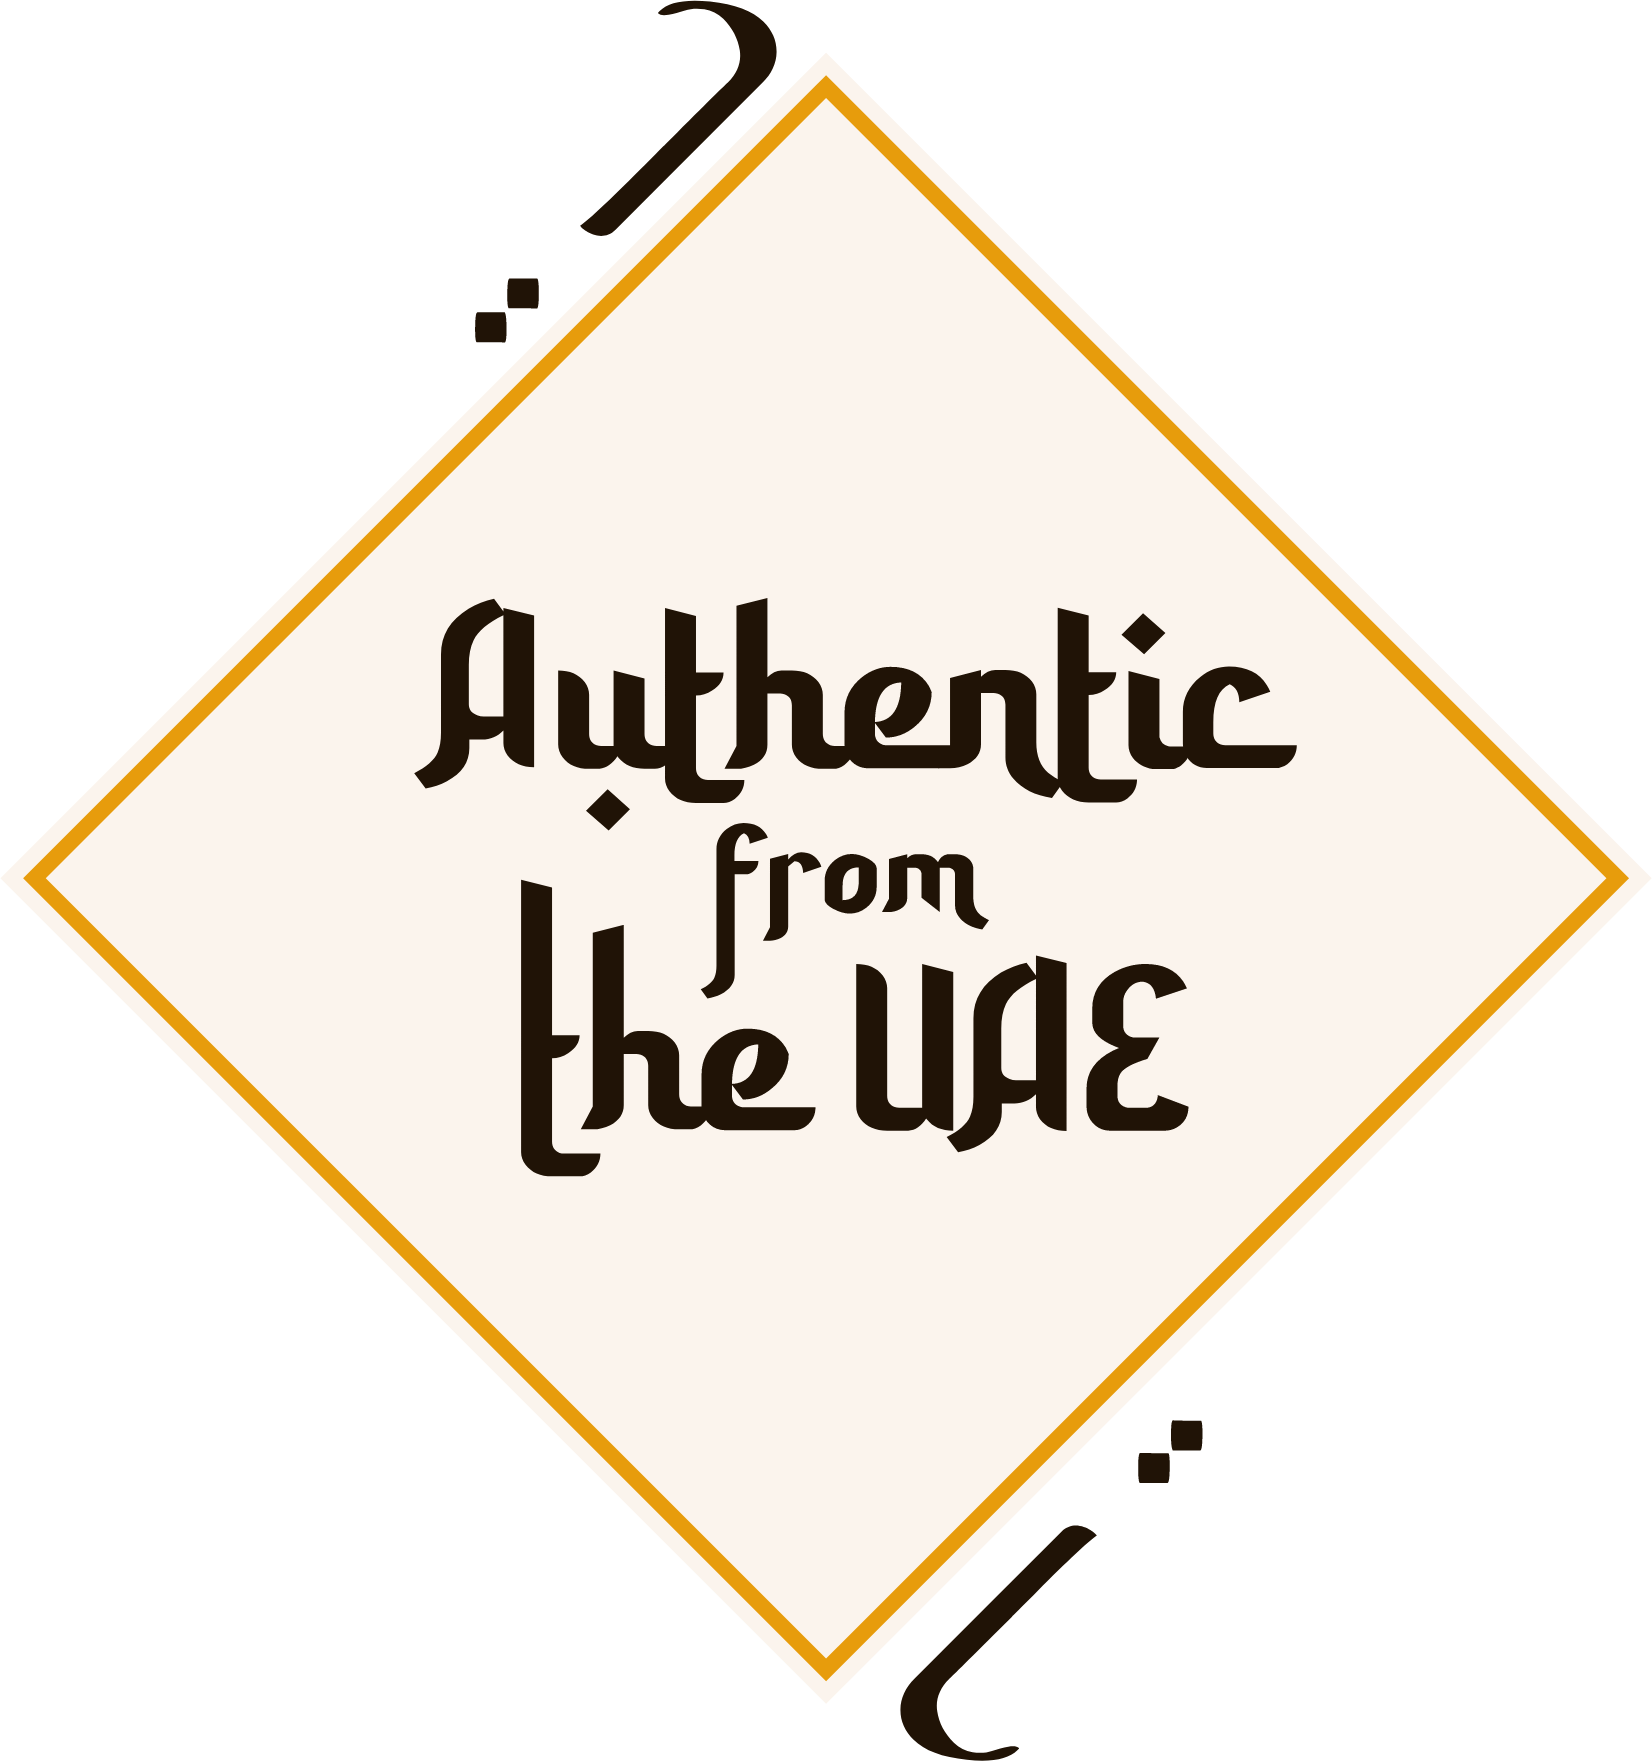 Authentic from the UAE